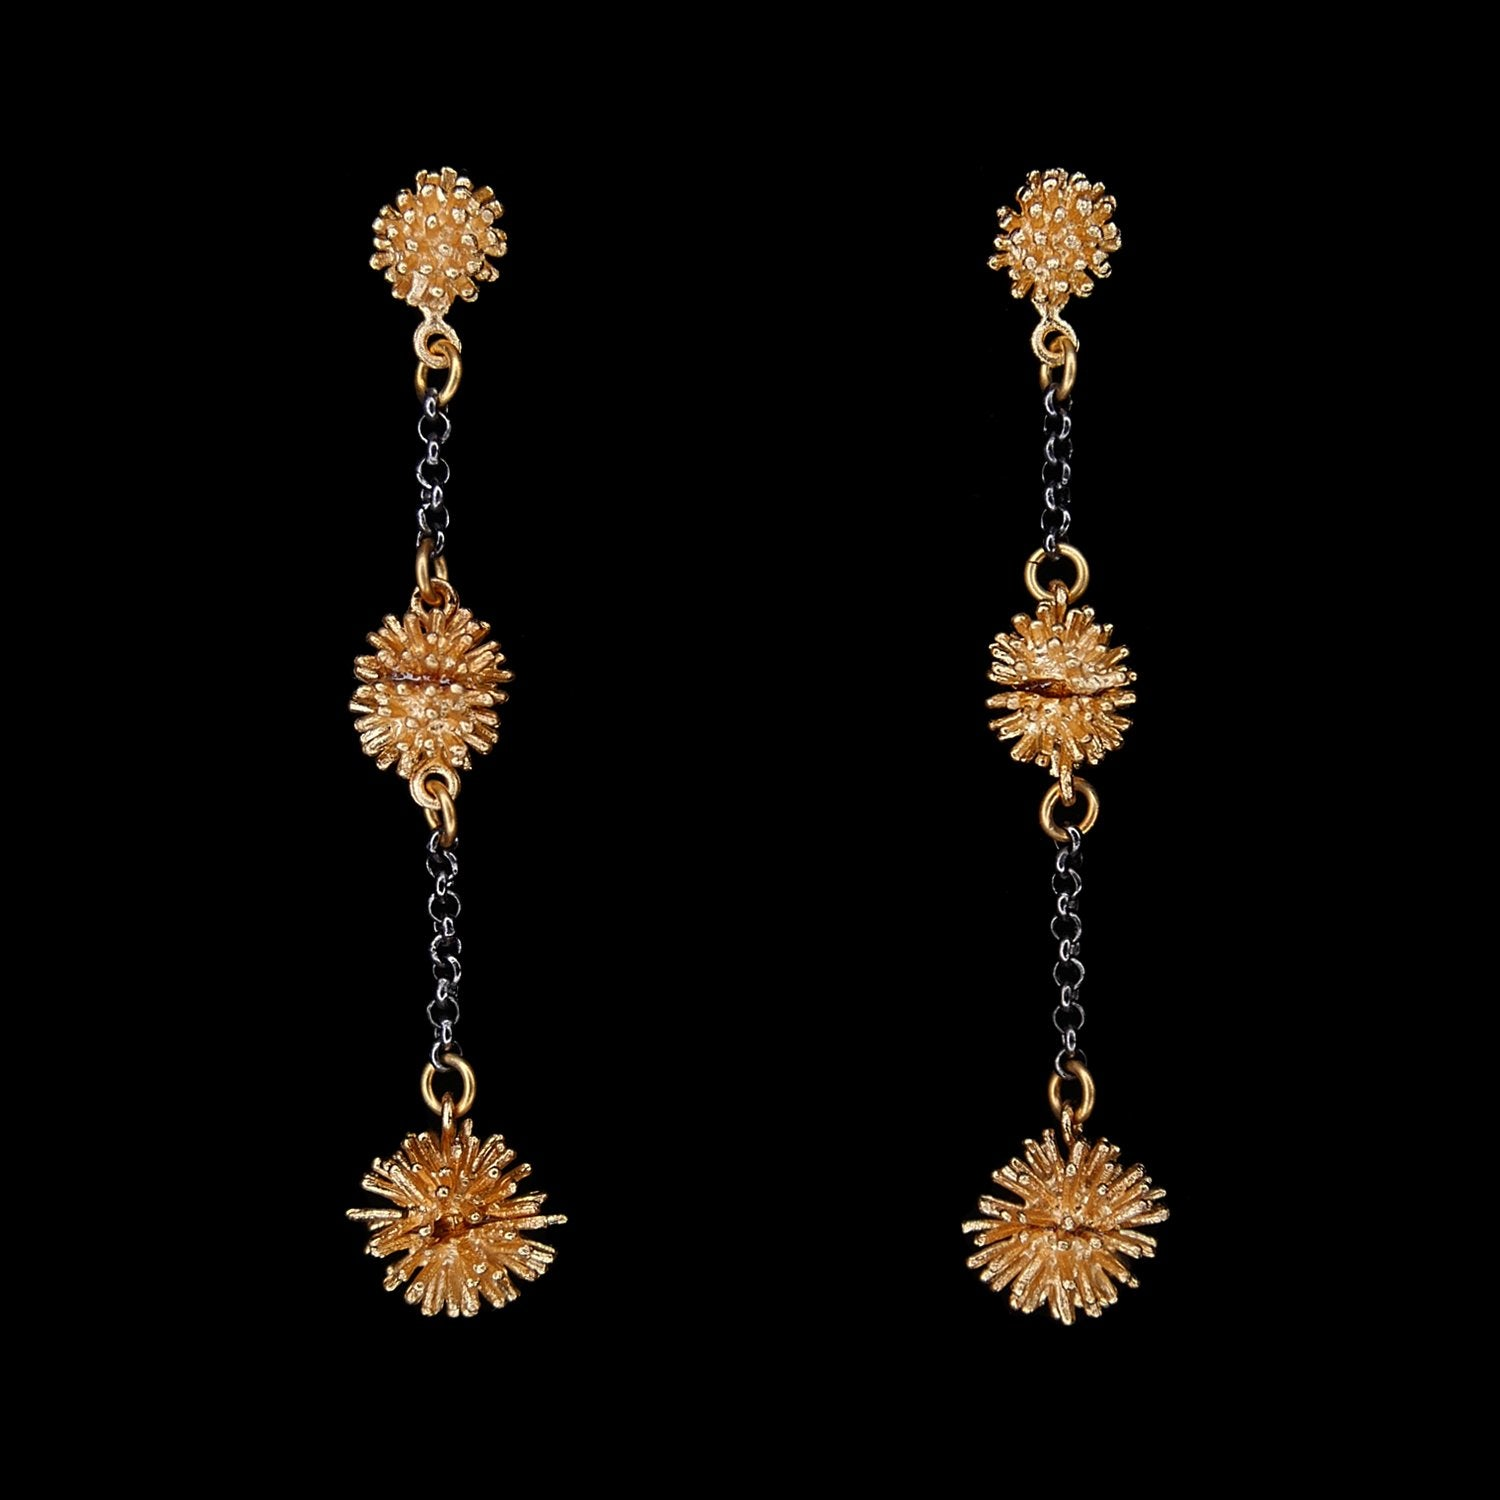 Gone To Seed Earrings - Two Tone Long Triple Dangle Post